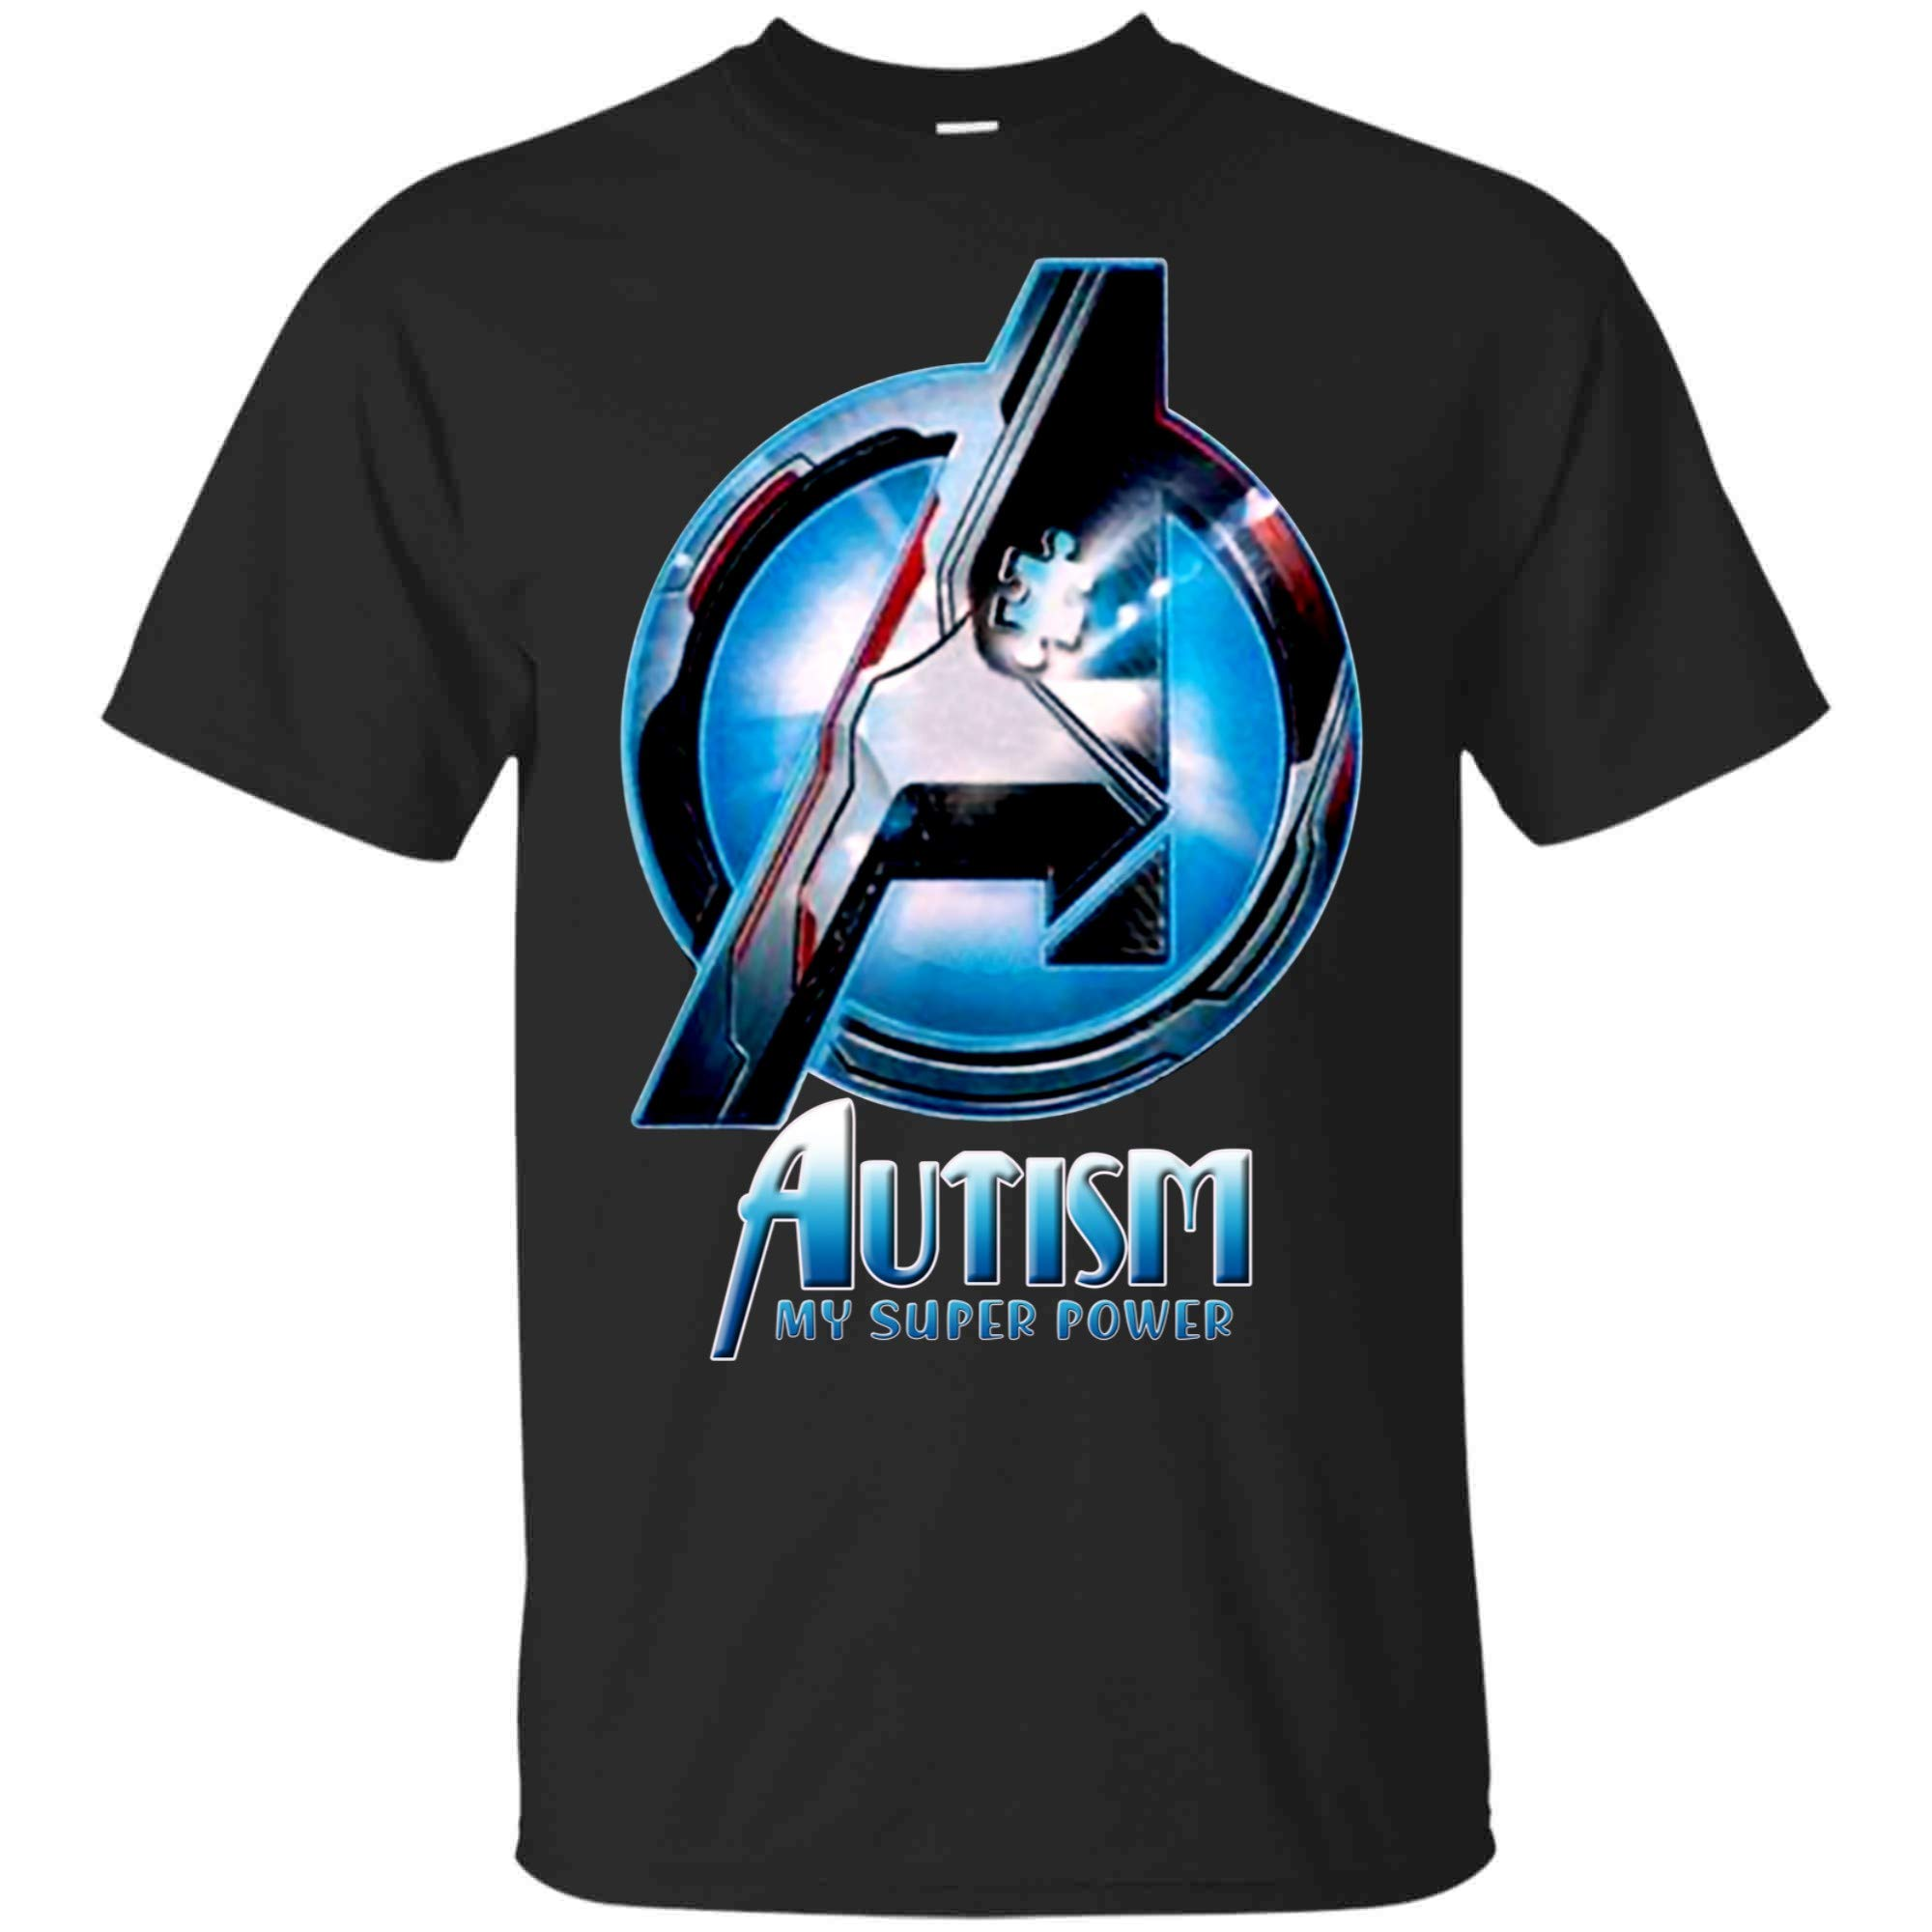 Autism Is My Superpower Avenger Tshirtautism Awareness T Shirts